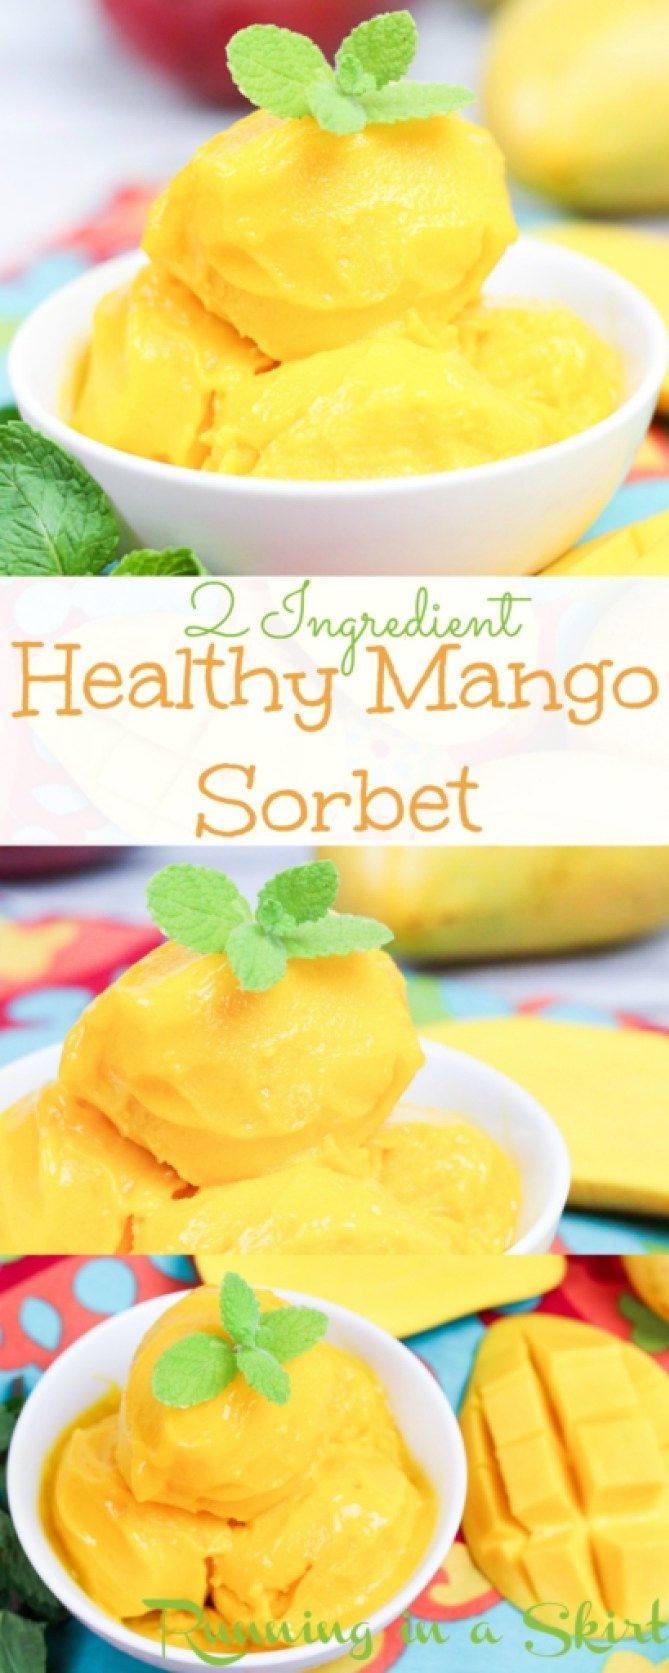 2 Ingredient Healthy Mango Sorbet Recipe This Easy And